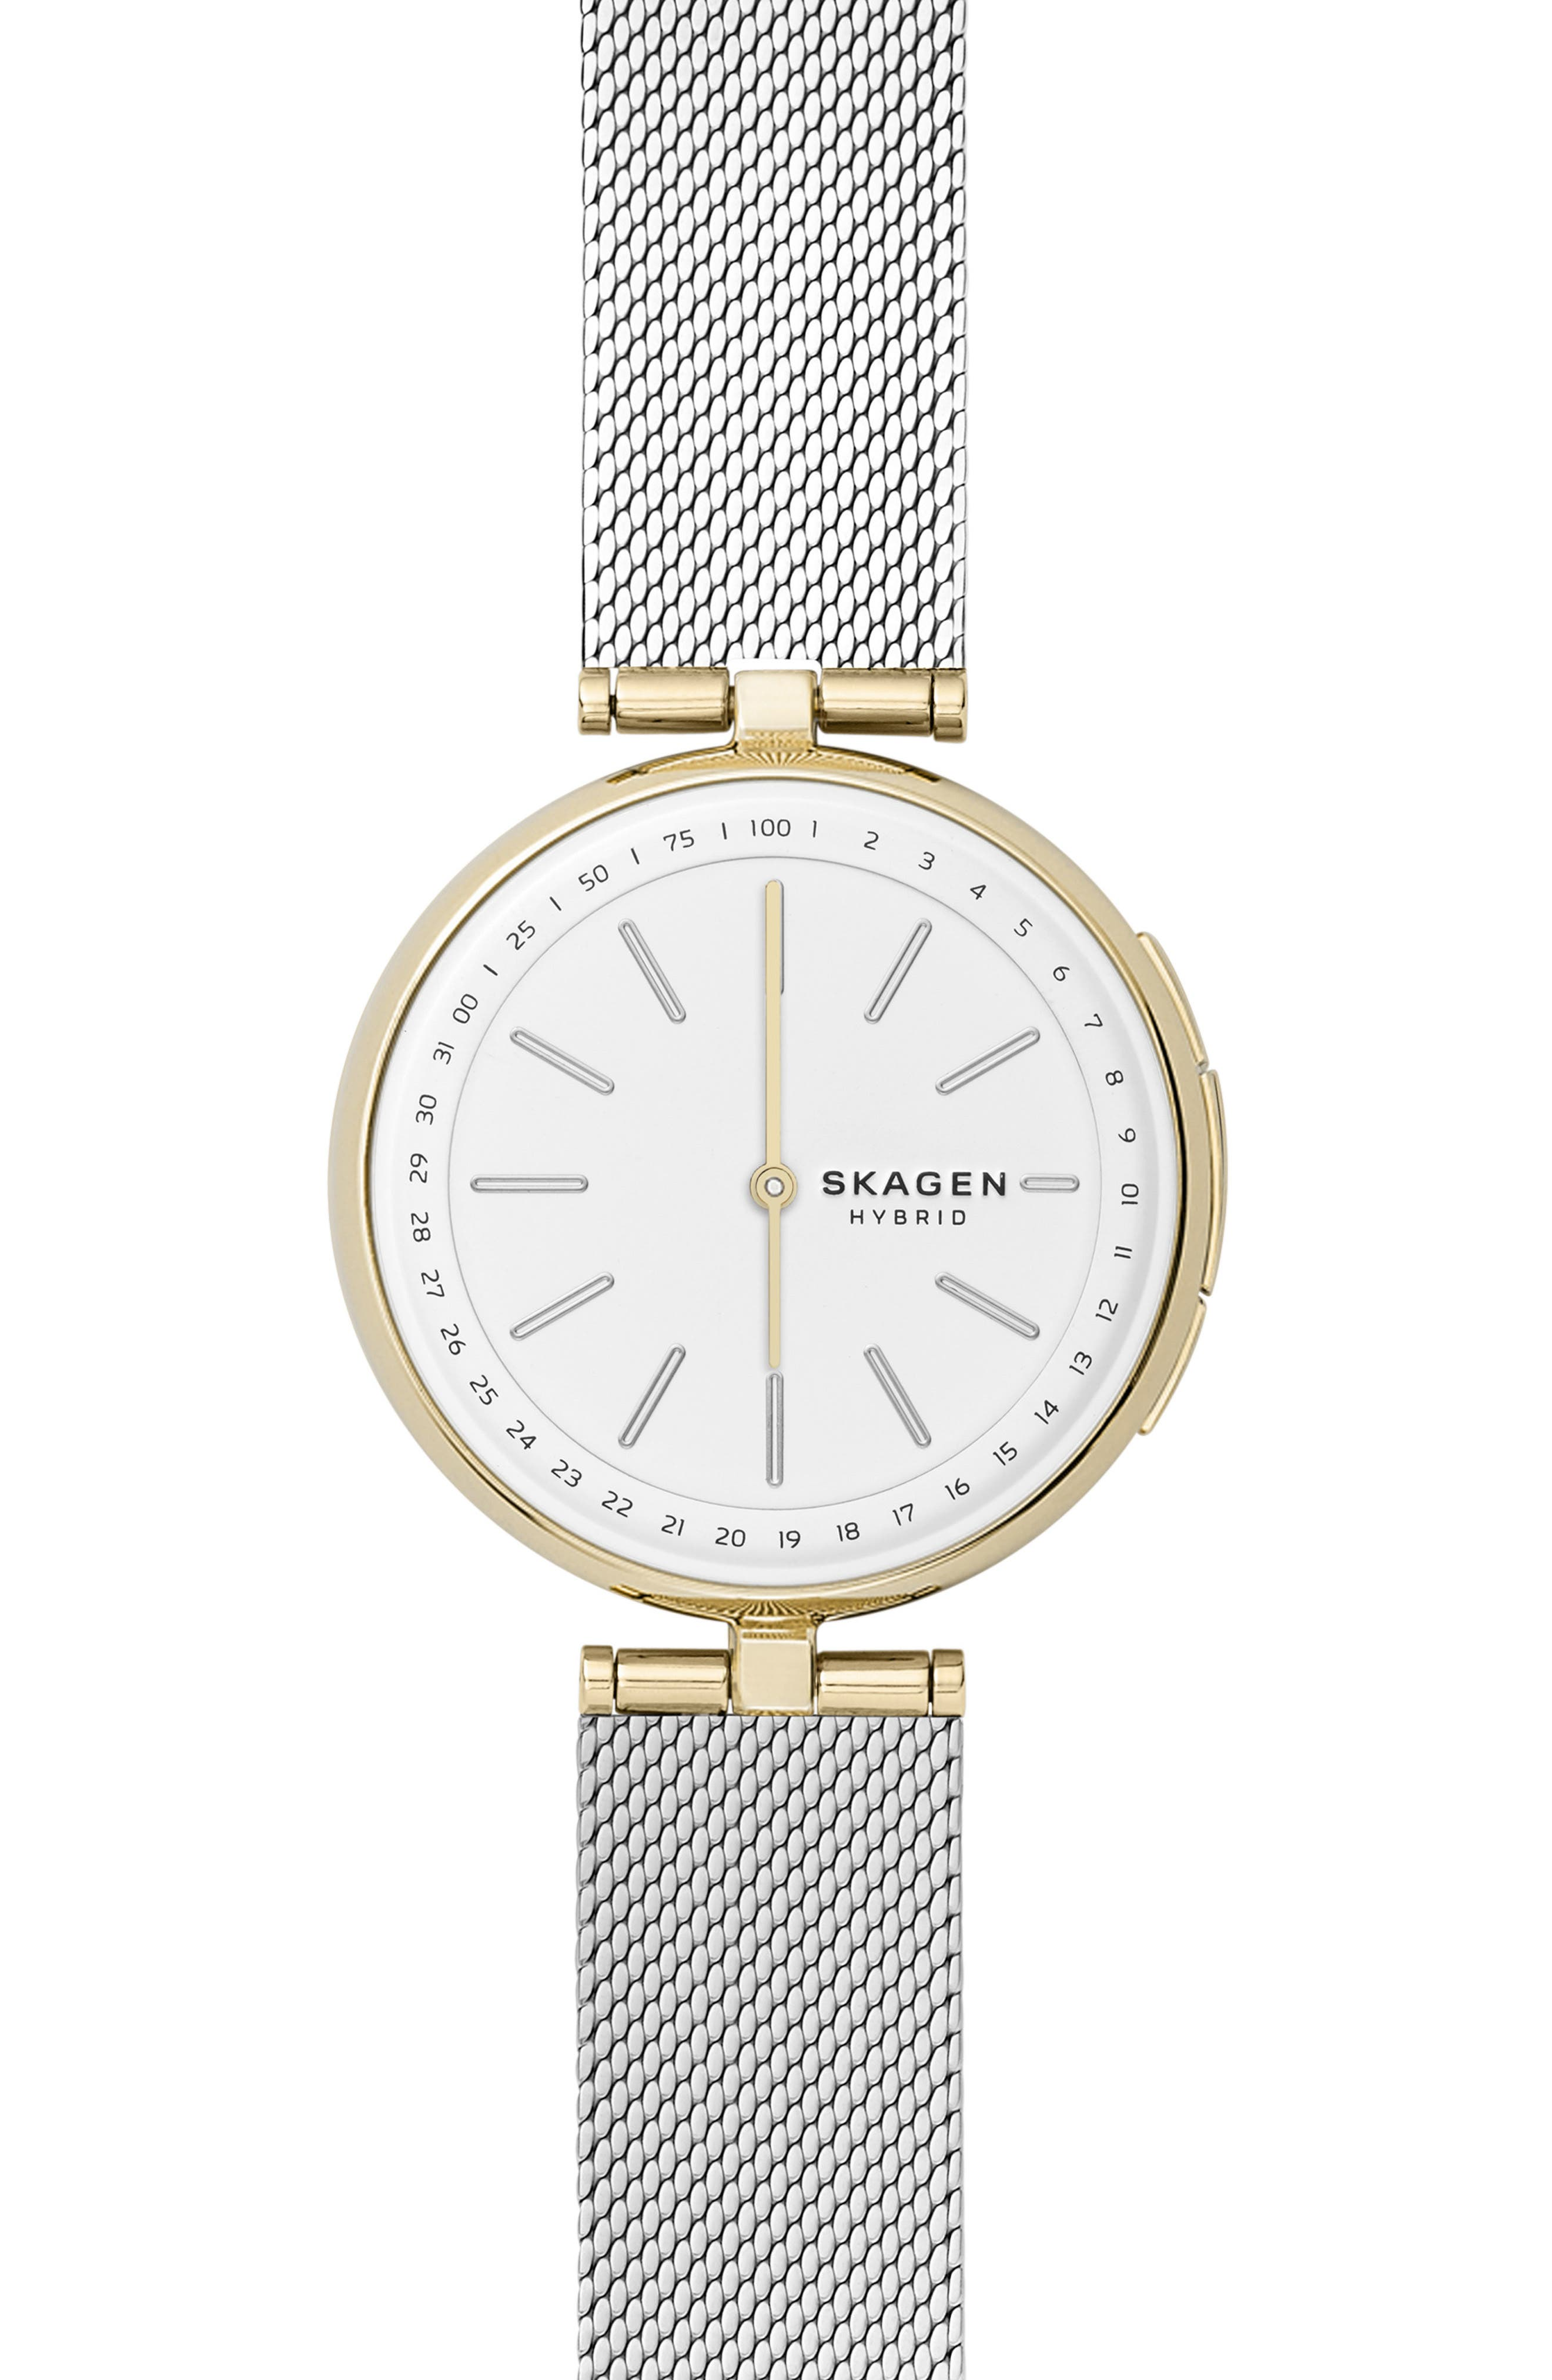 SKAGEN SIGNATURE T-BAR HYBRID SMARTWATCH, 36MM